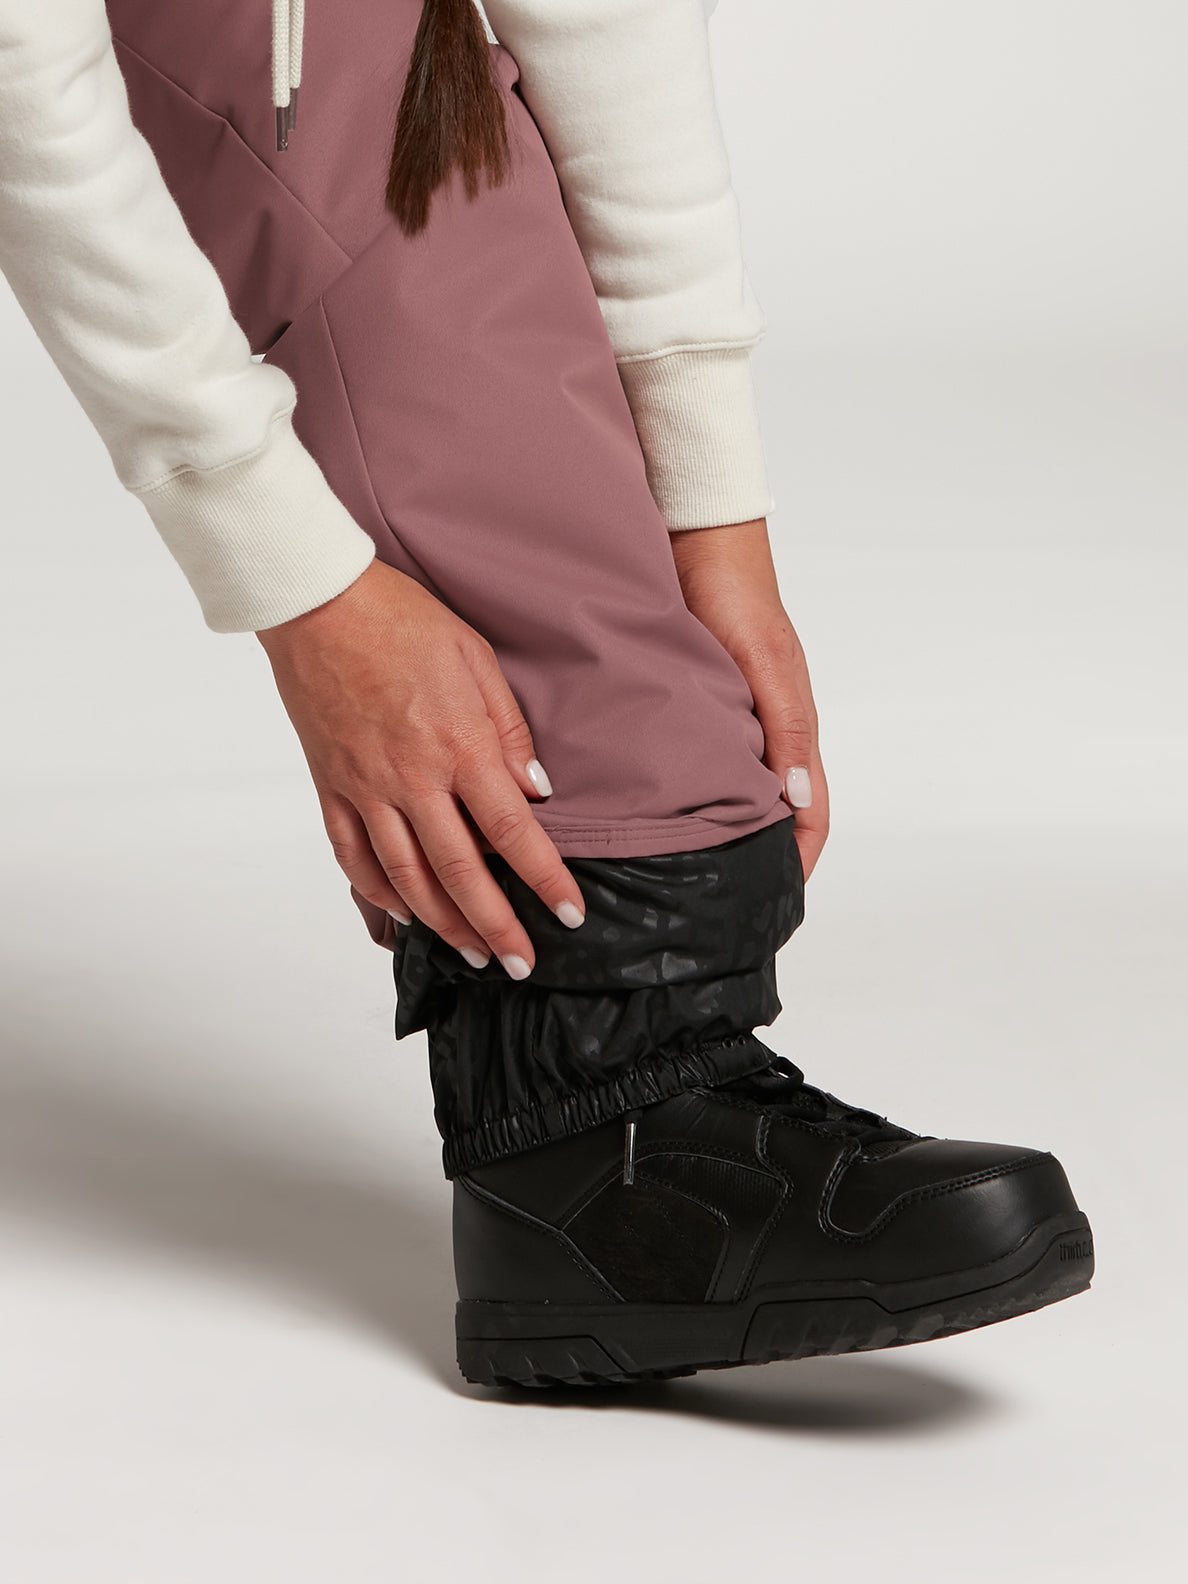 Womens Frochickie Insulated Pants - Black (H1252103_BLK) [17]